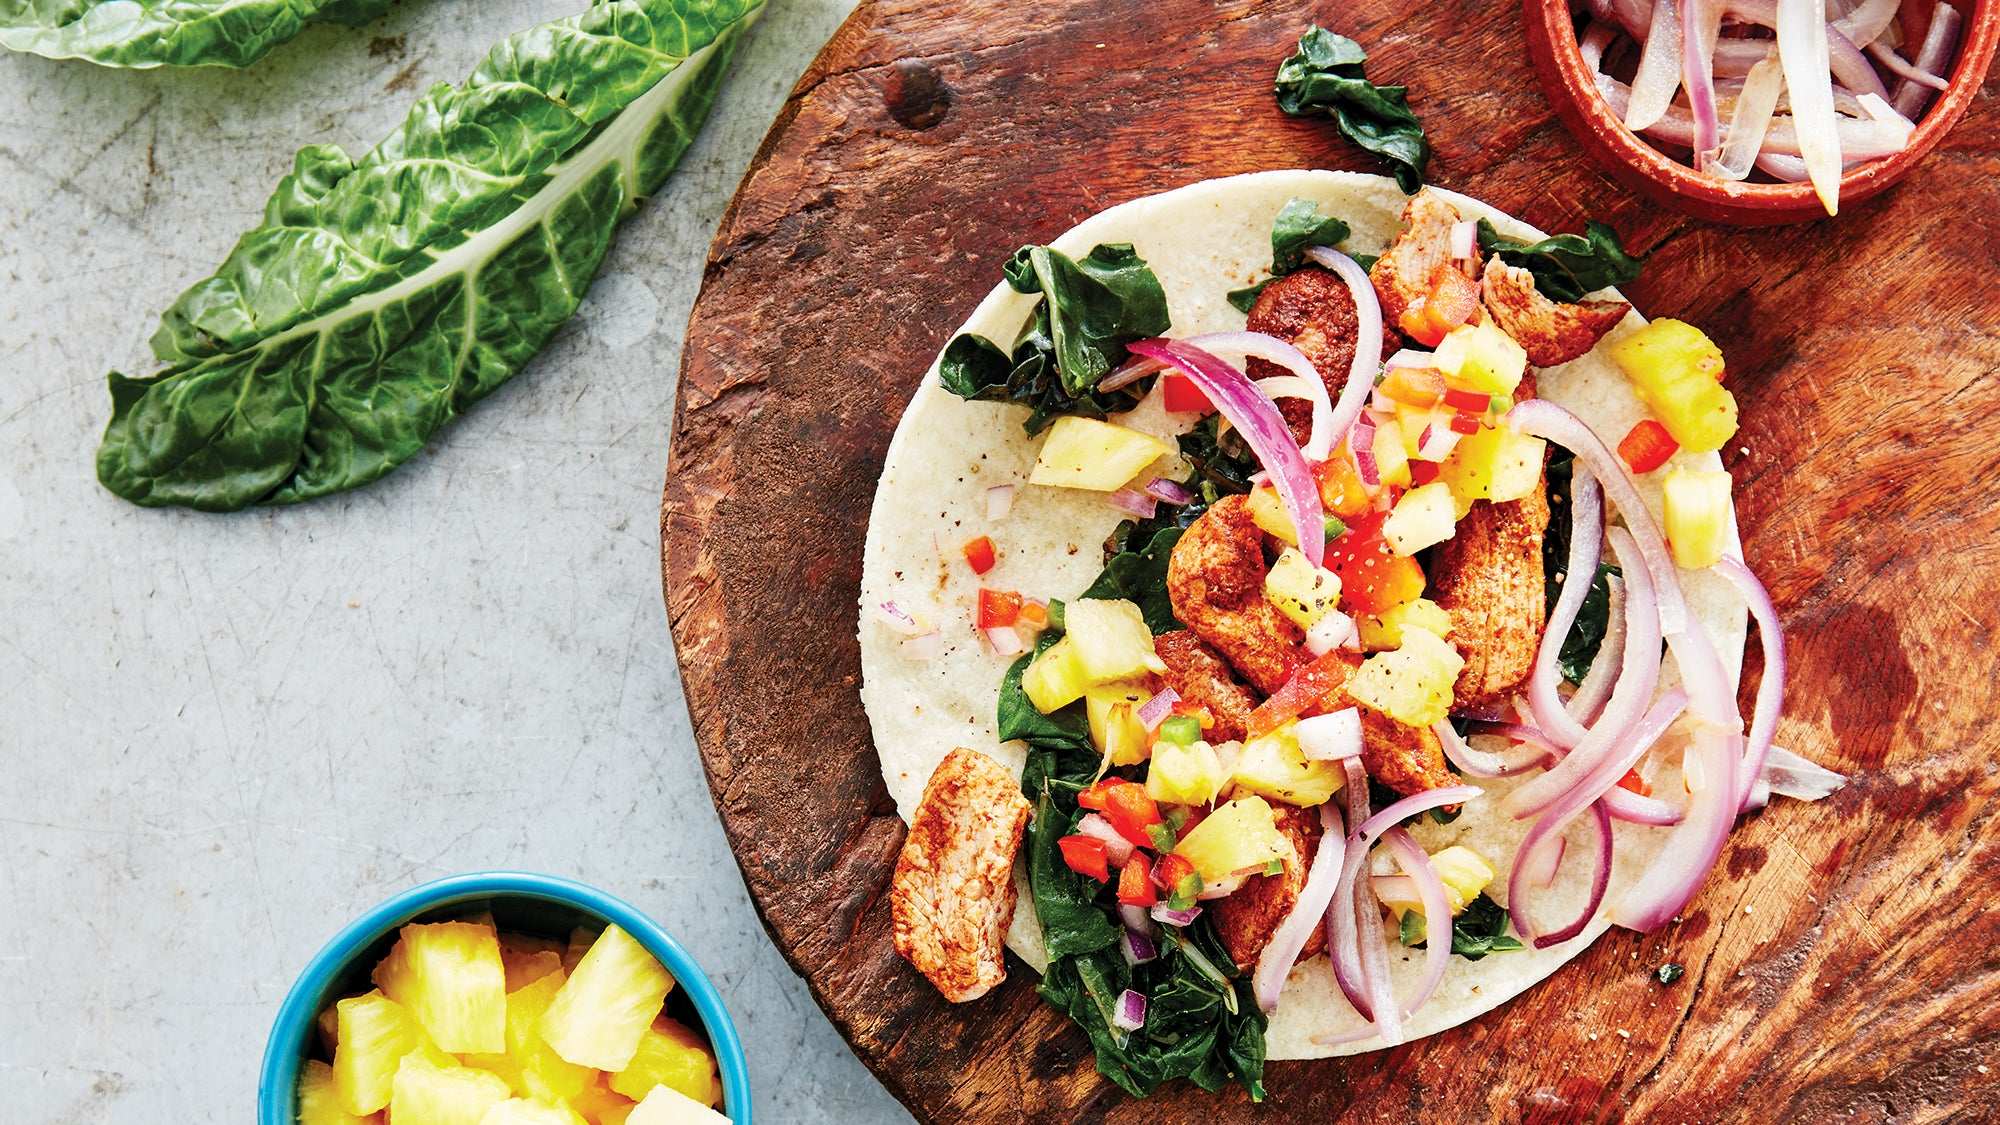 Pork and Swiss Chard Tacos with Spicy Pineapple Salsa Recipe